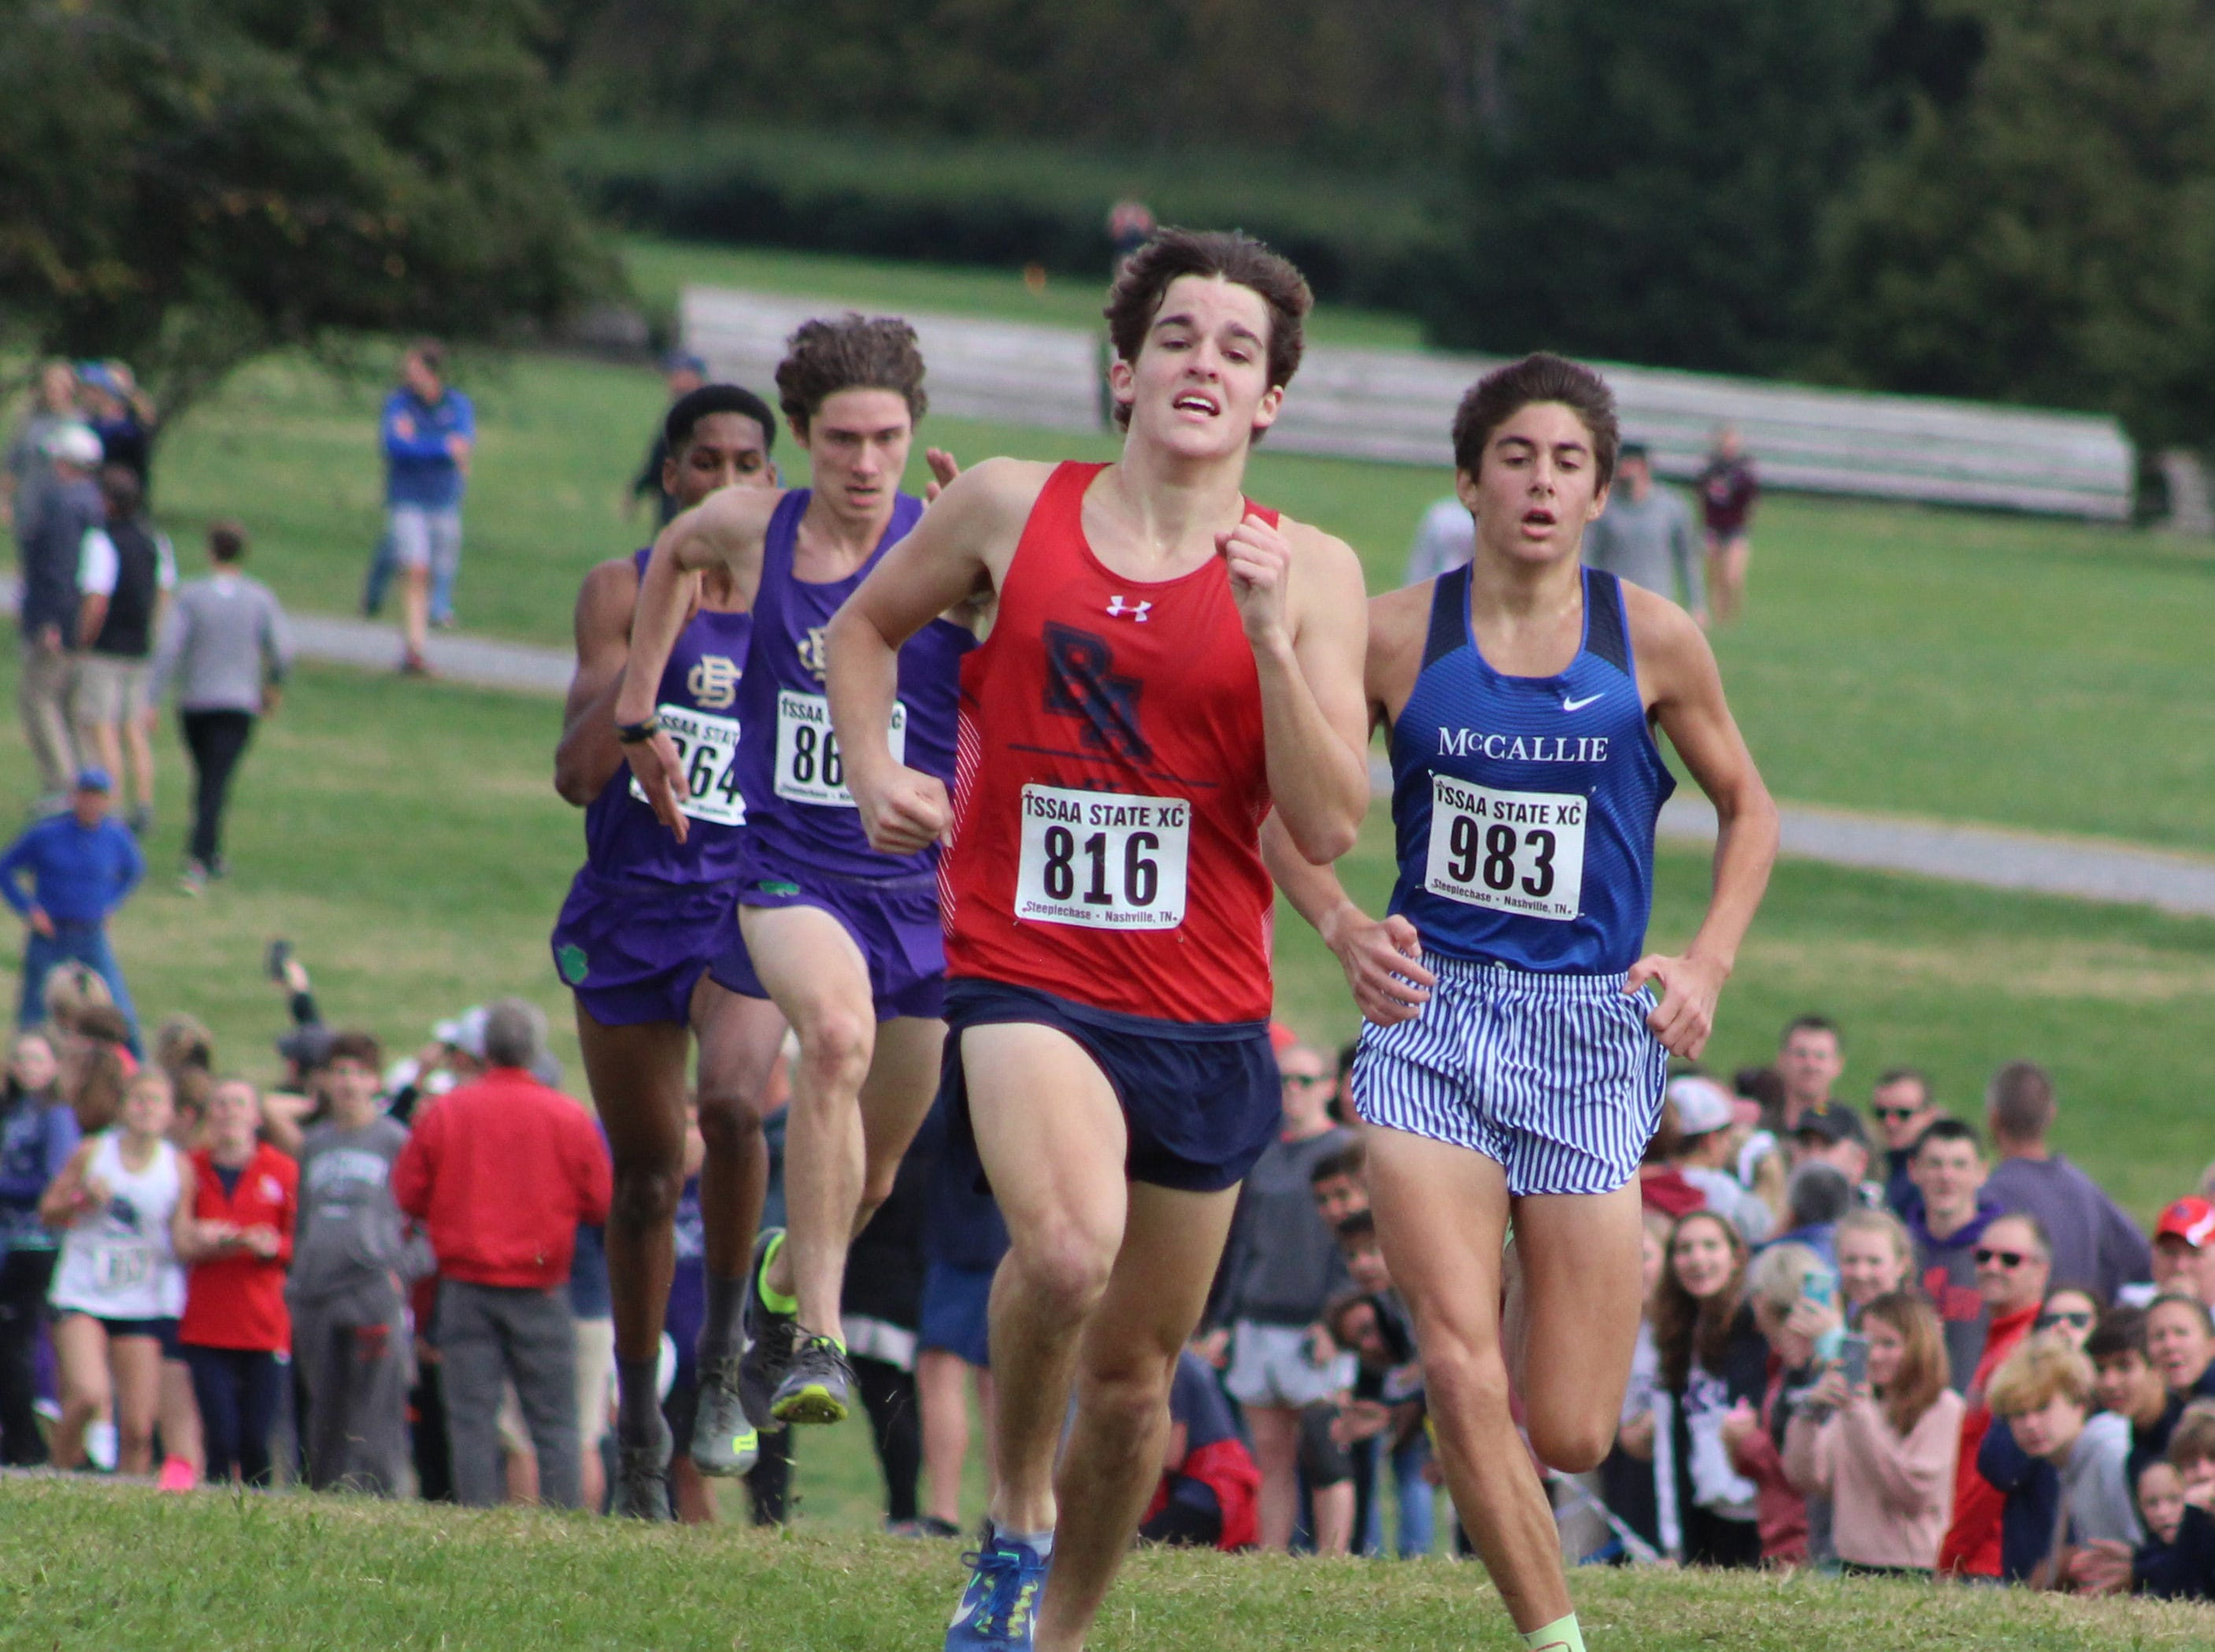 Brentwood Academy's Eddie Lunn finished seventh in the TSSAA Division II-AA boys cross country state championship on Saturday at Percy Warner Park.